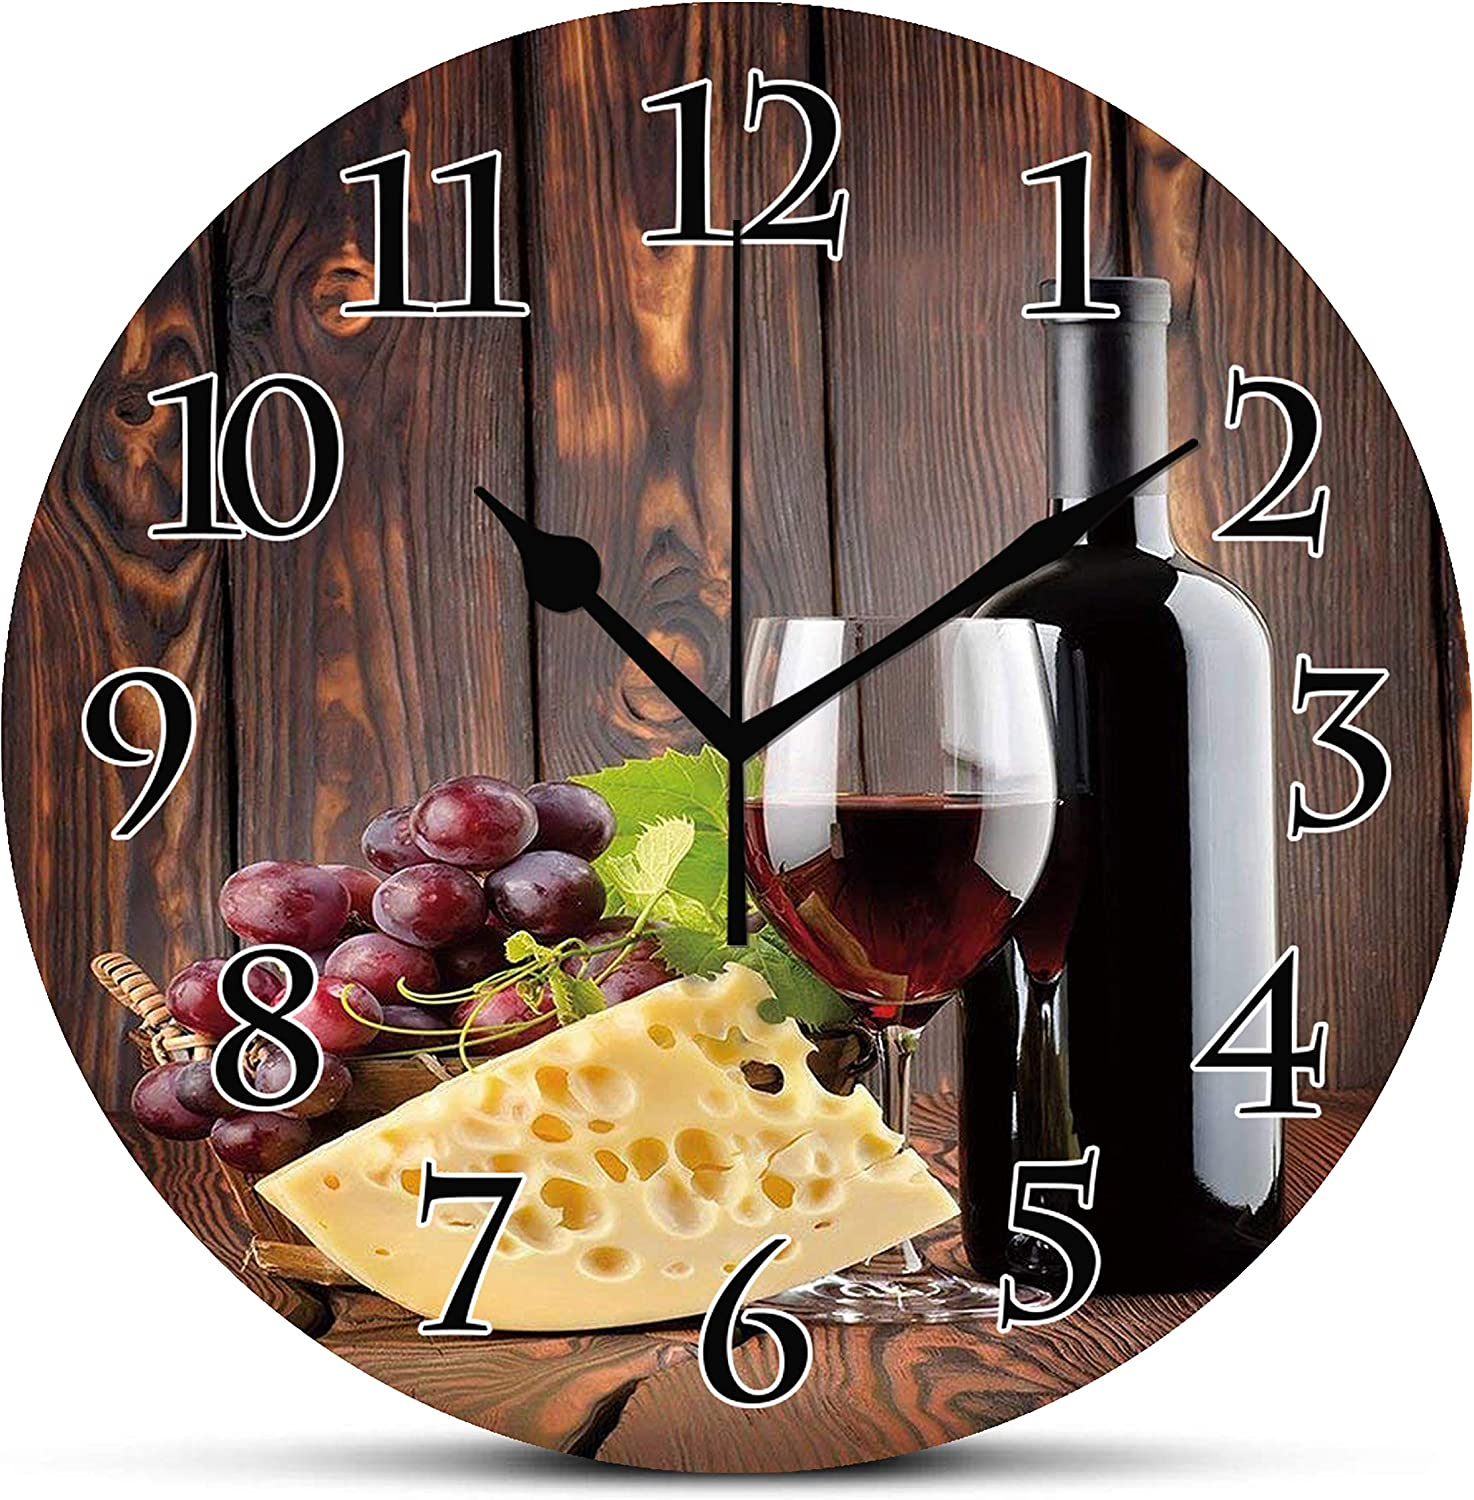 Silent Wall Clock,Wine,Red Wine Cabernet Bottle and Glass Cheese and Grapes on Wood Planks Print Decorative,Brown Burgundy Cream Non Ticking Wall Clock/Desk Clock for Office Home Decor 10 inch